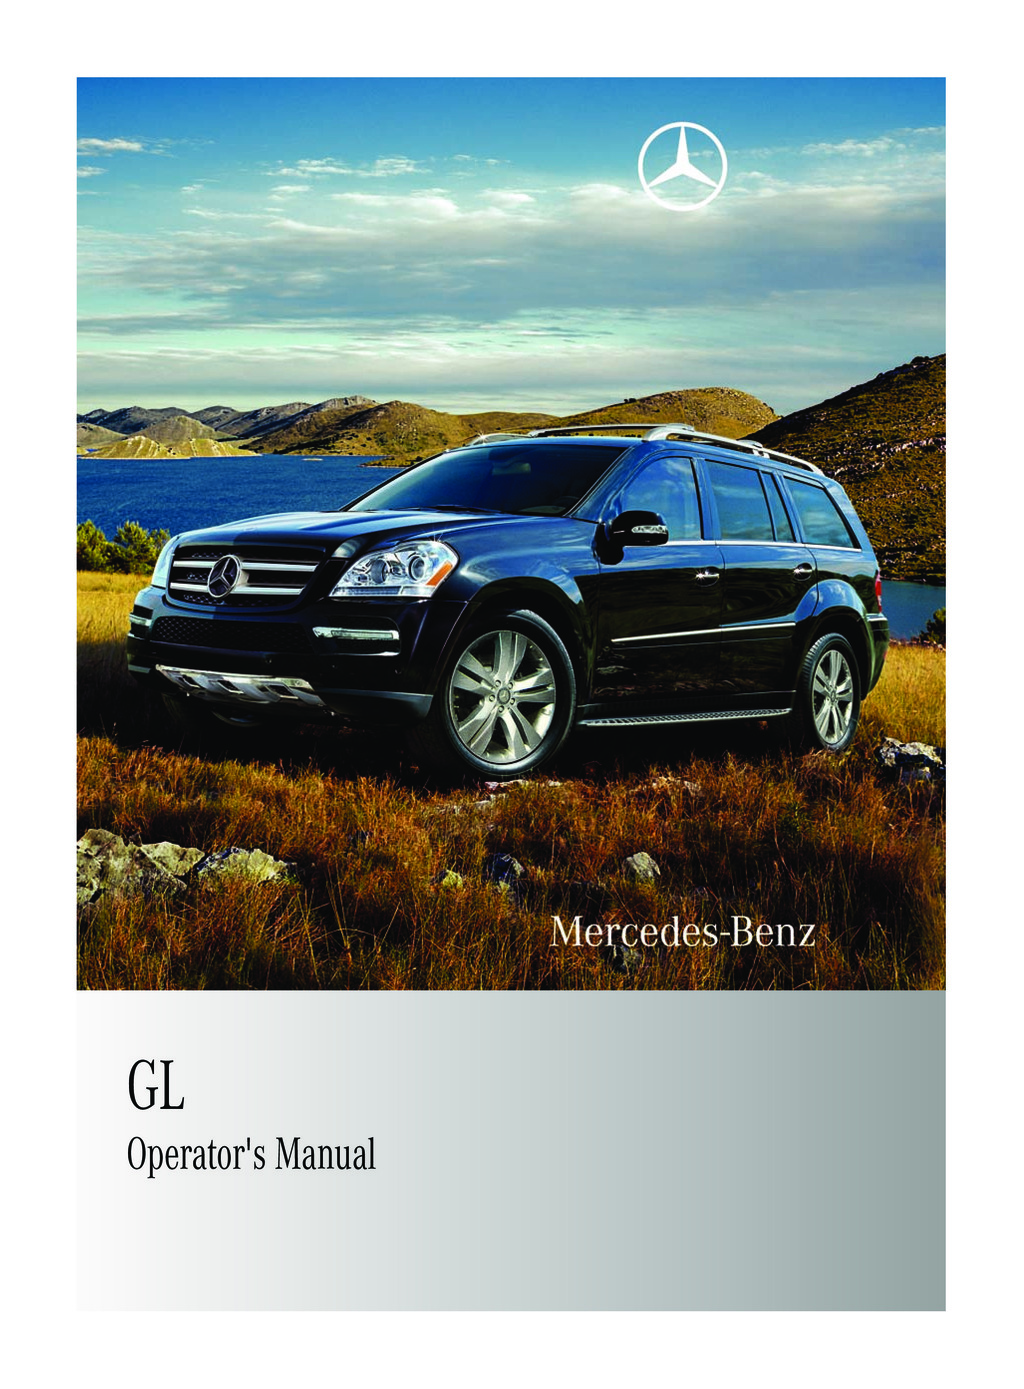 2011 Mercedes-Benz GL owners manual